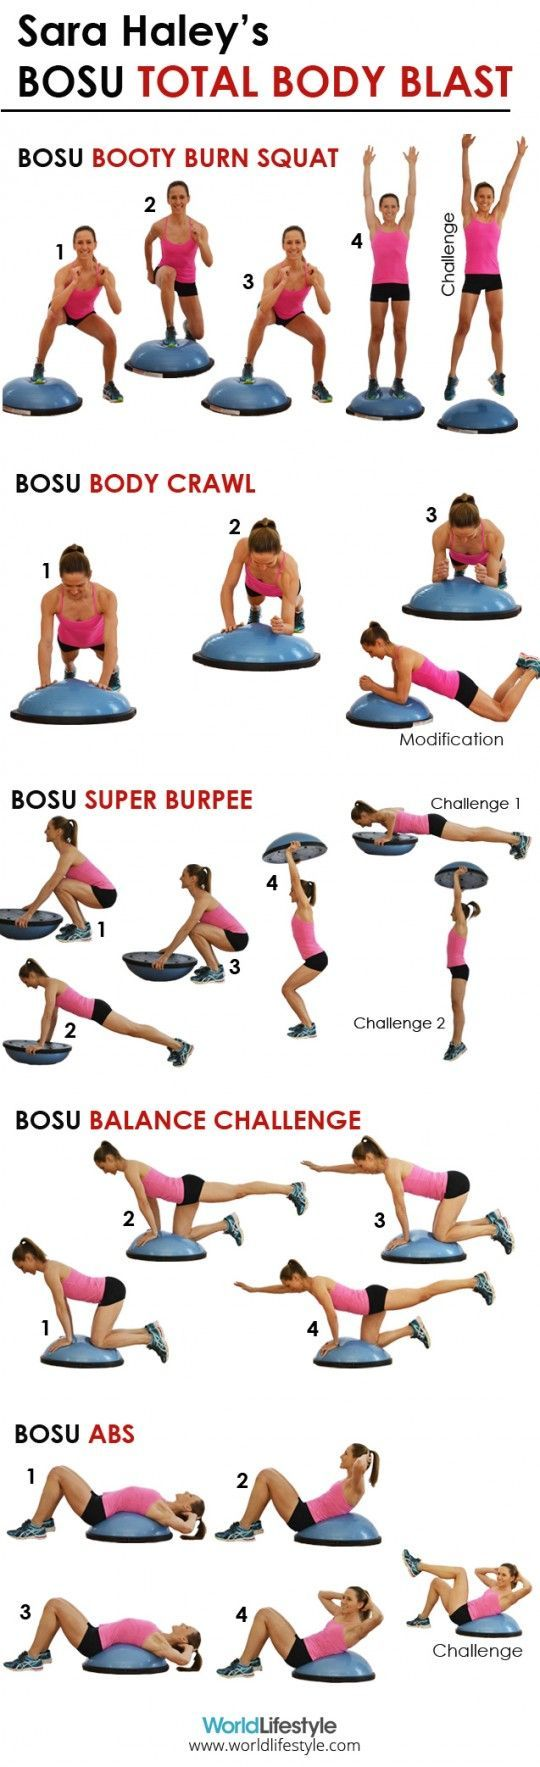 Awesome BOSU Ball workout for strengthening the core and growing some booty. Good for an added challenge when working out